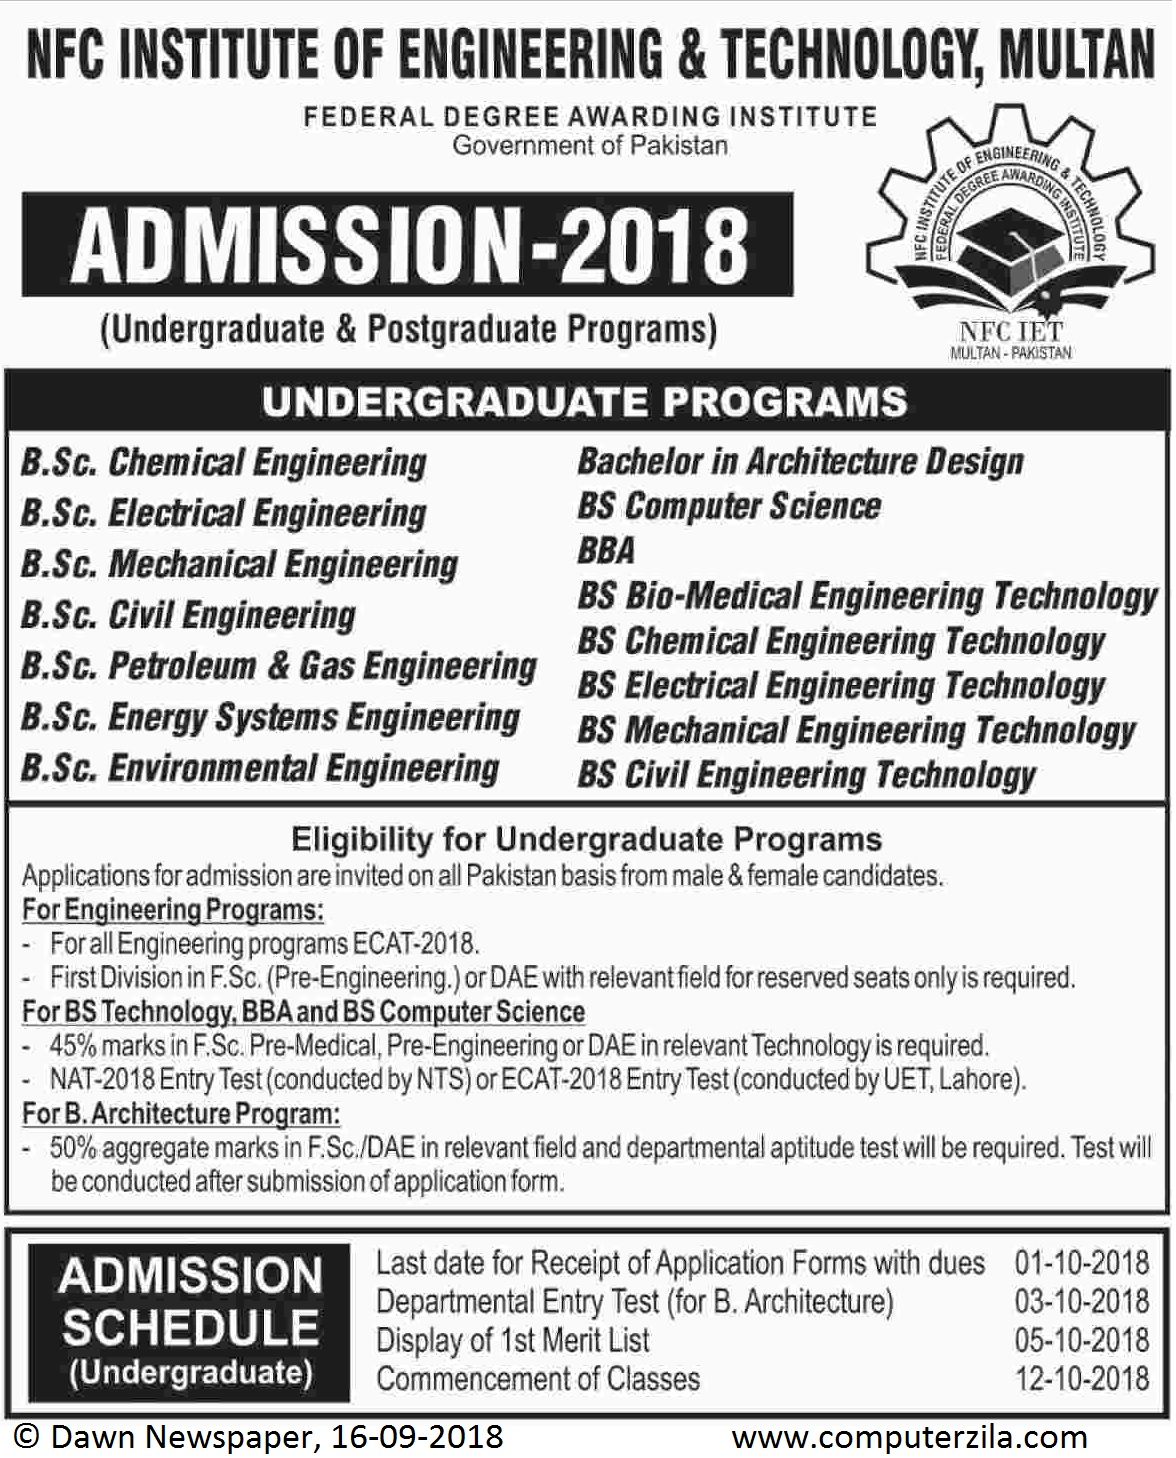 Admissions Open For Fall 2018 At NFCIET Multan Campus